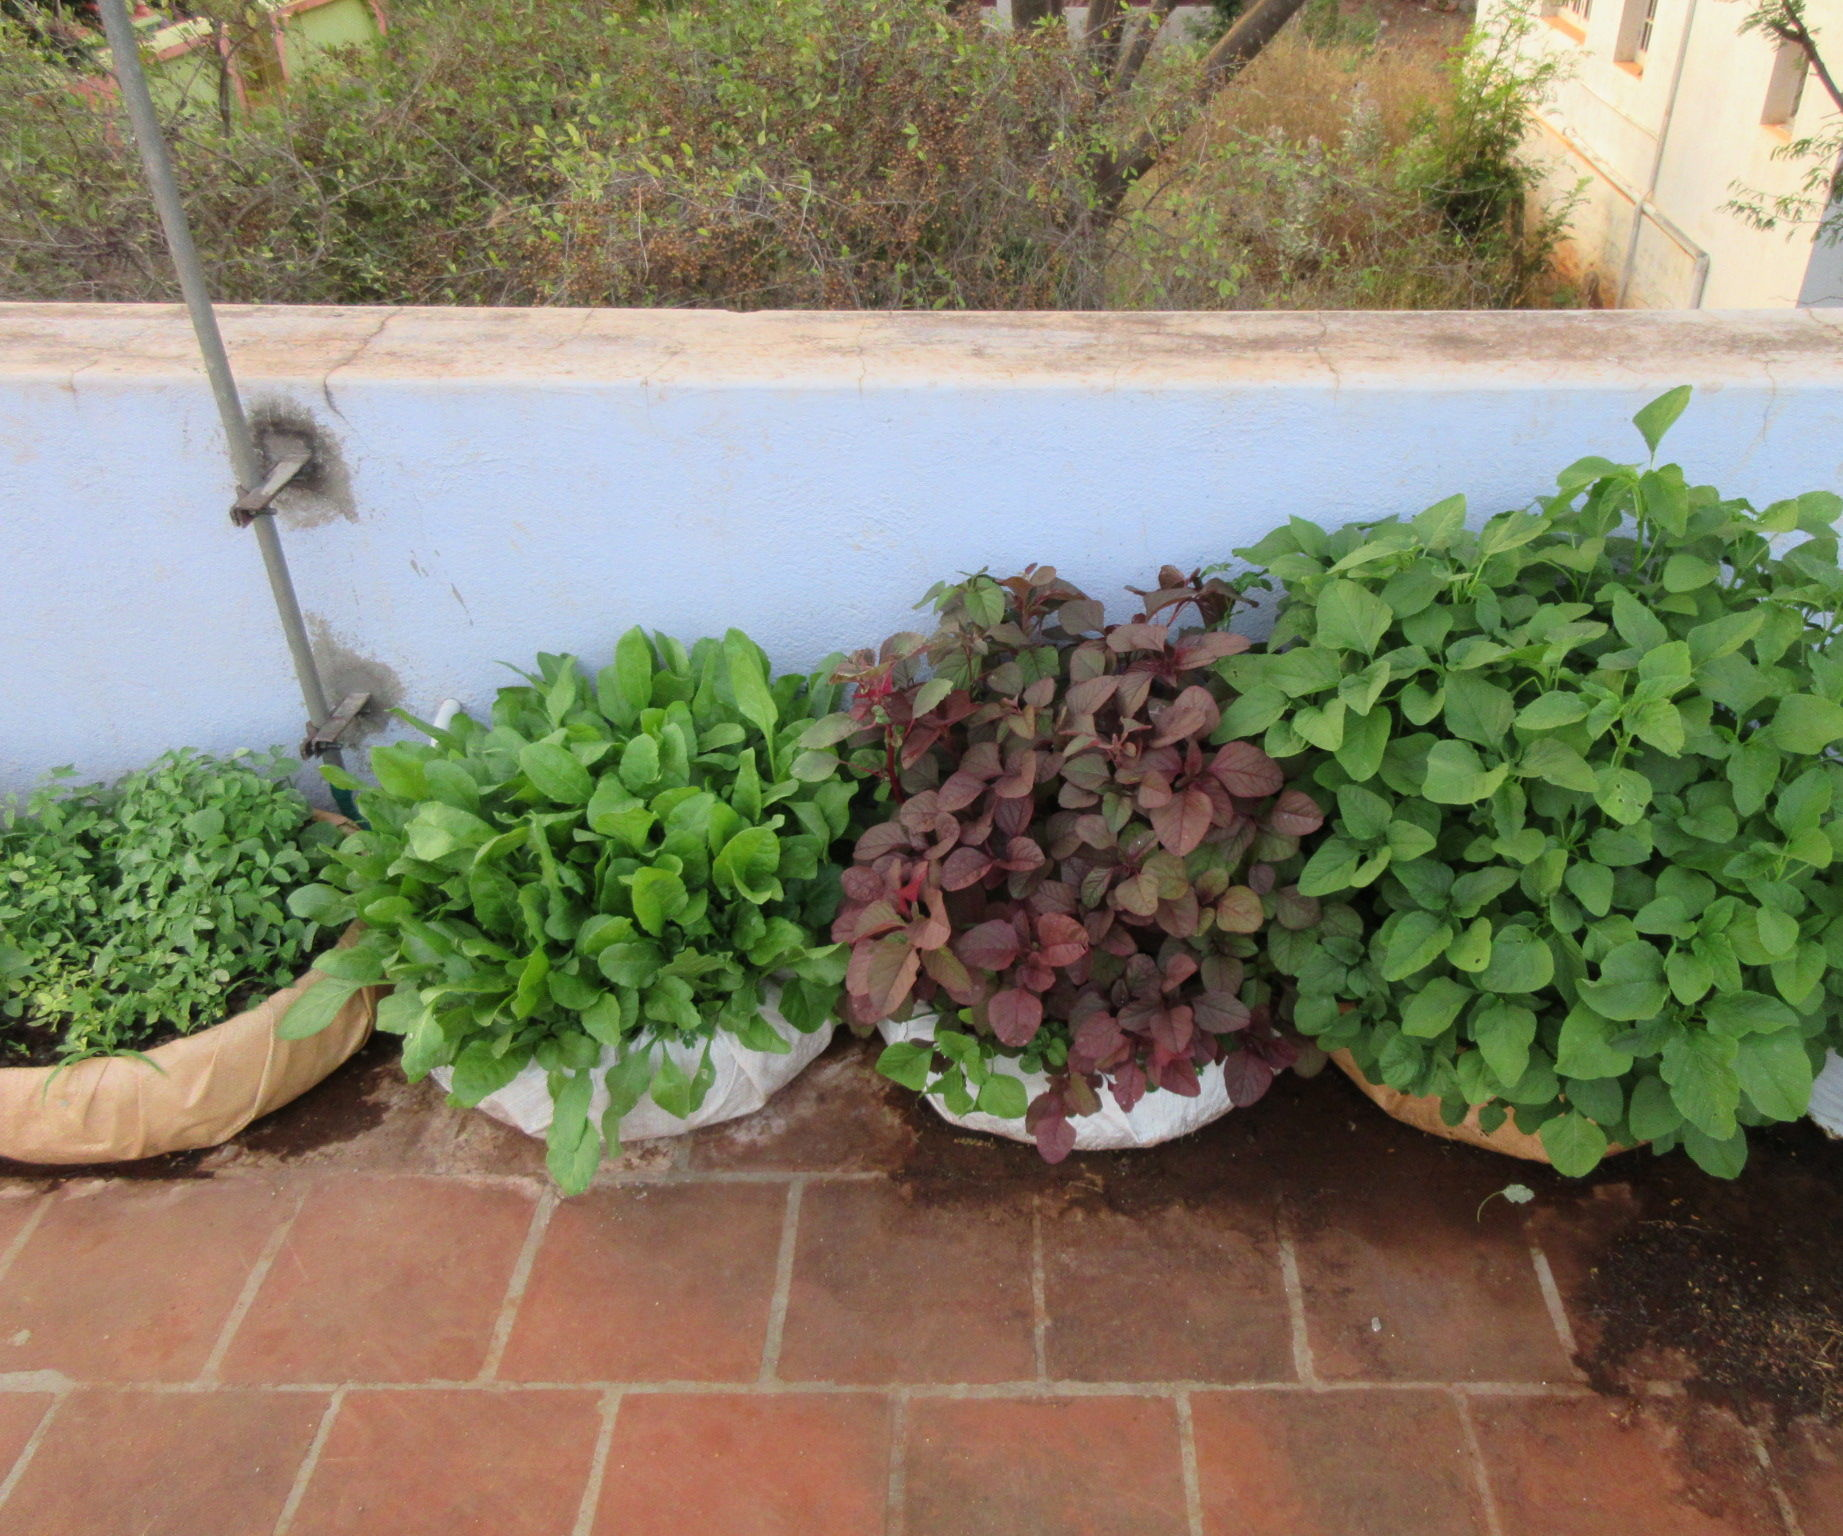 Use Old Tyres to Grow Leafy Vegetables